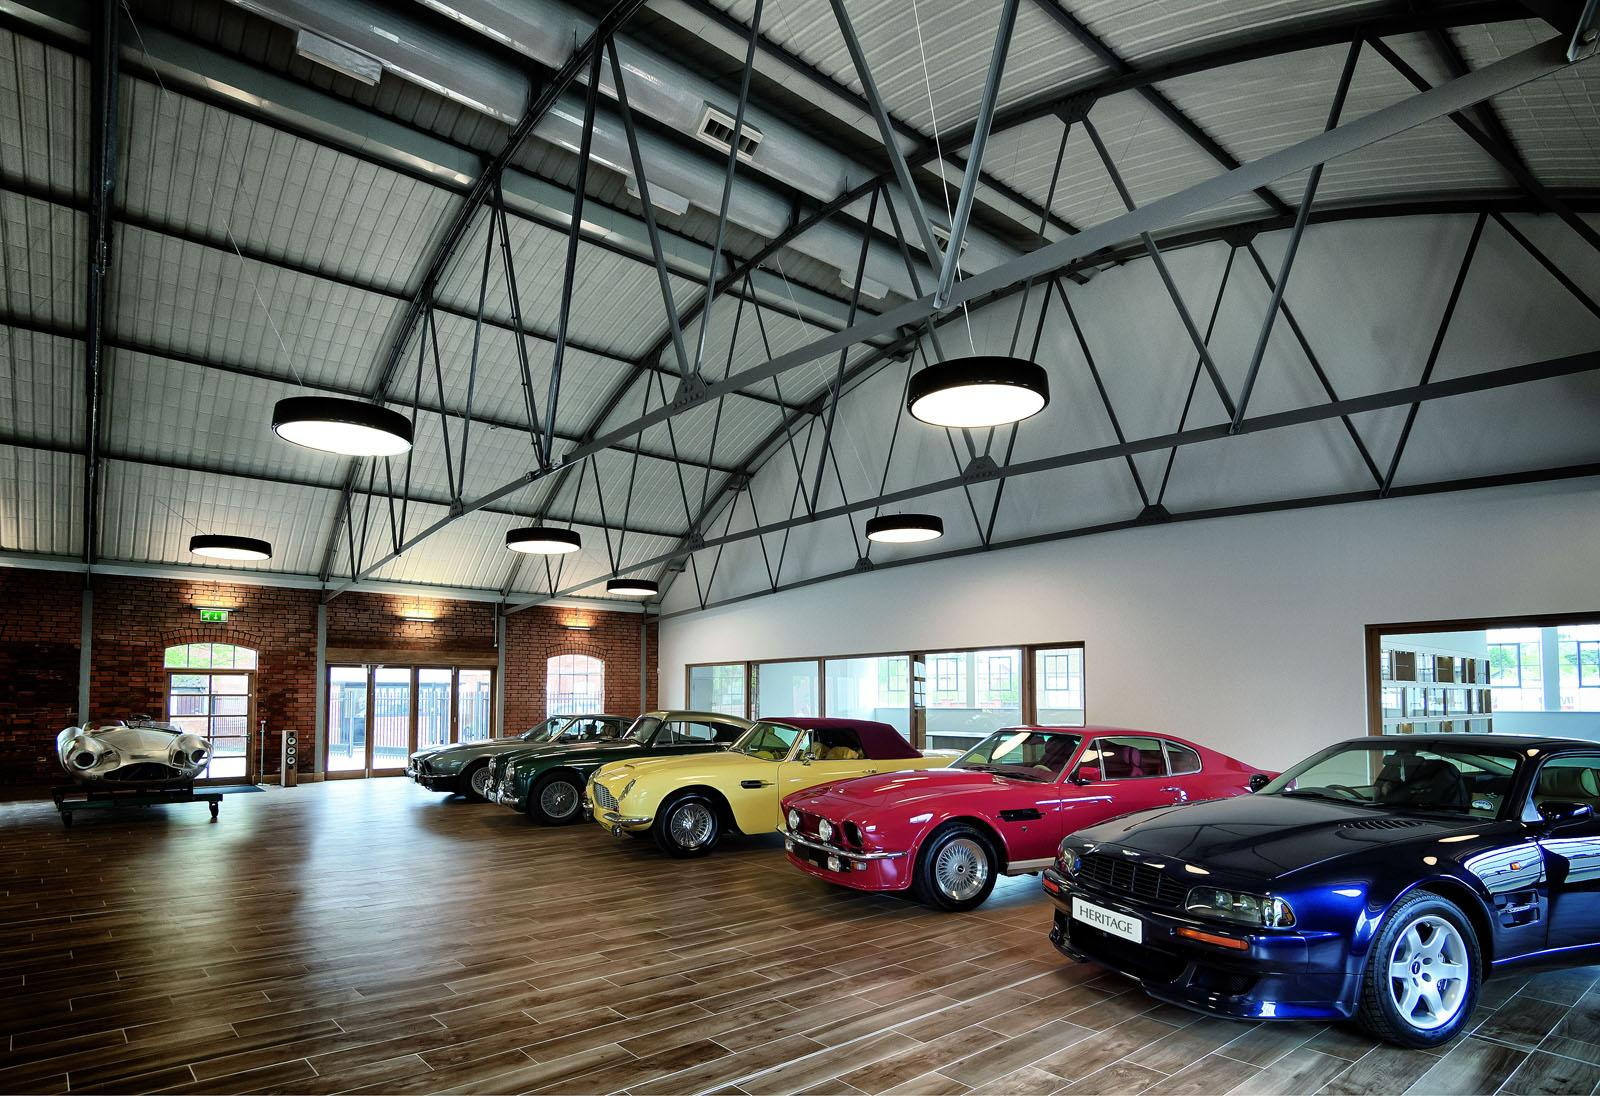 Aston Martin Launches The Heritage Showroom To Sell